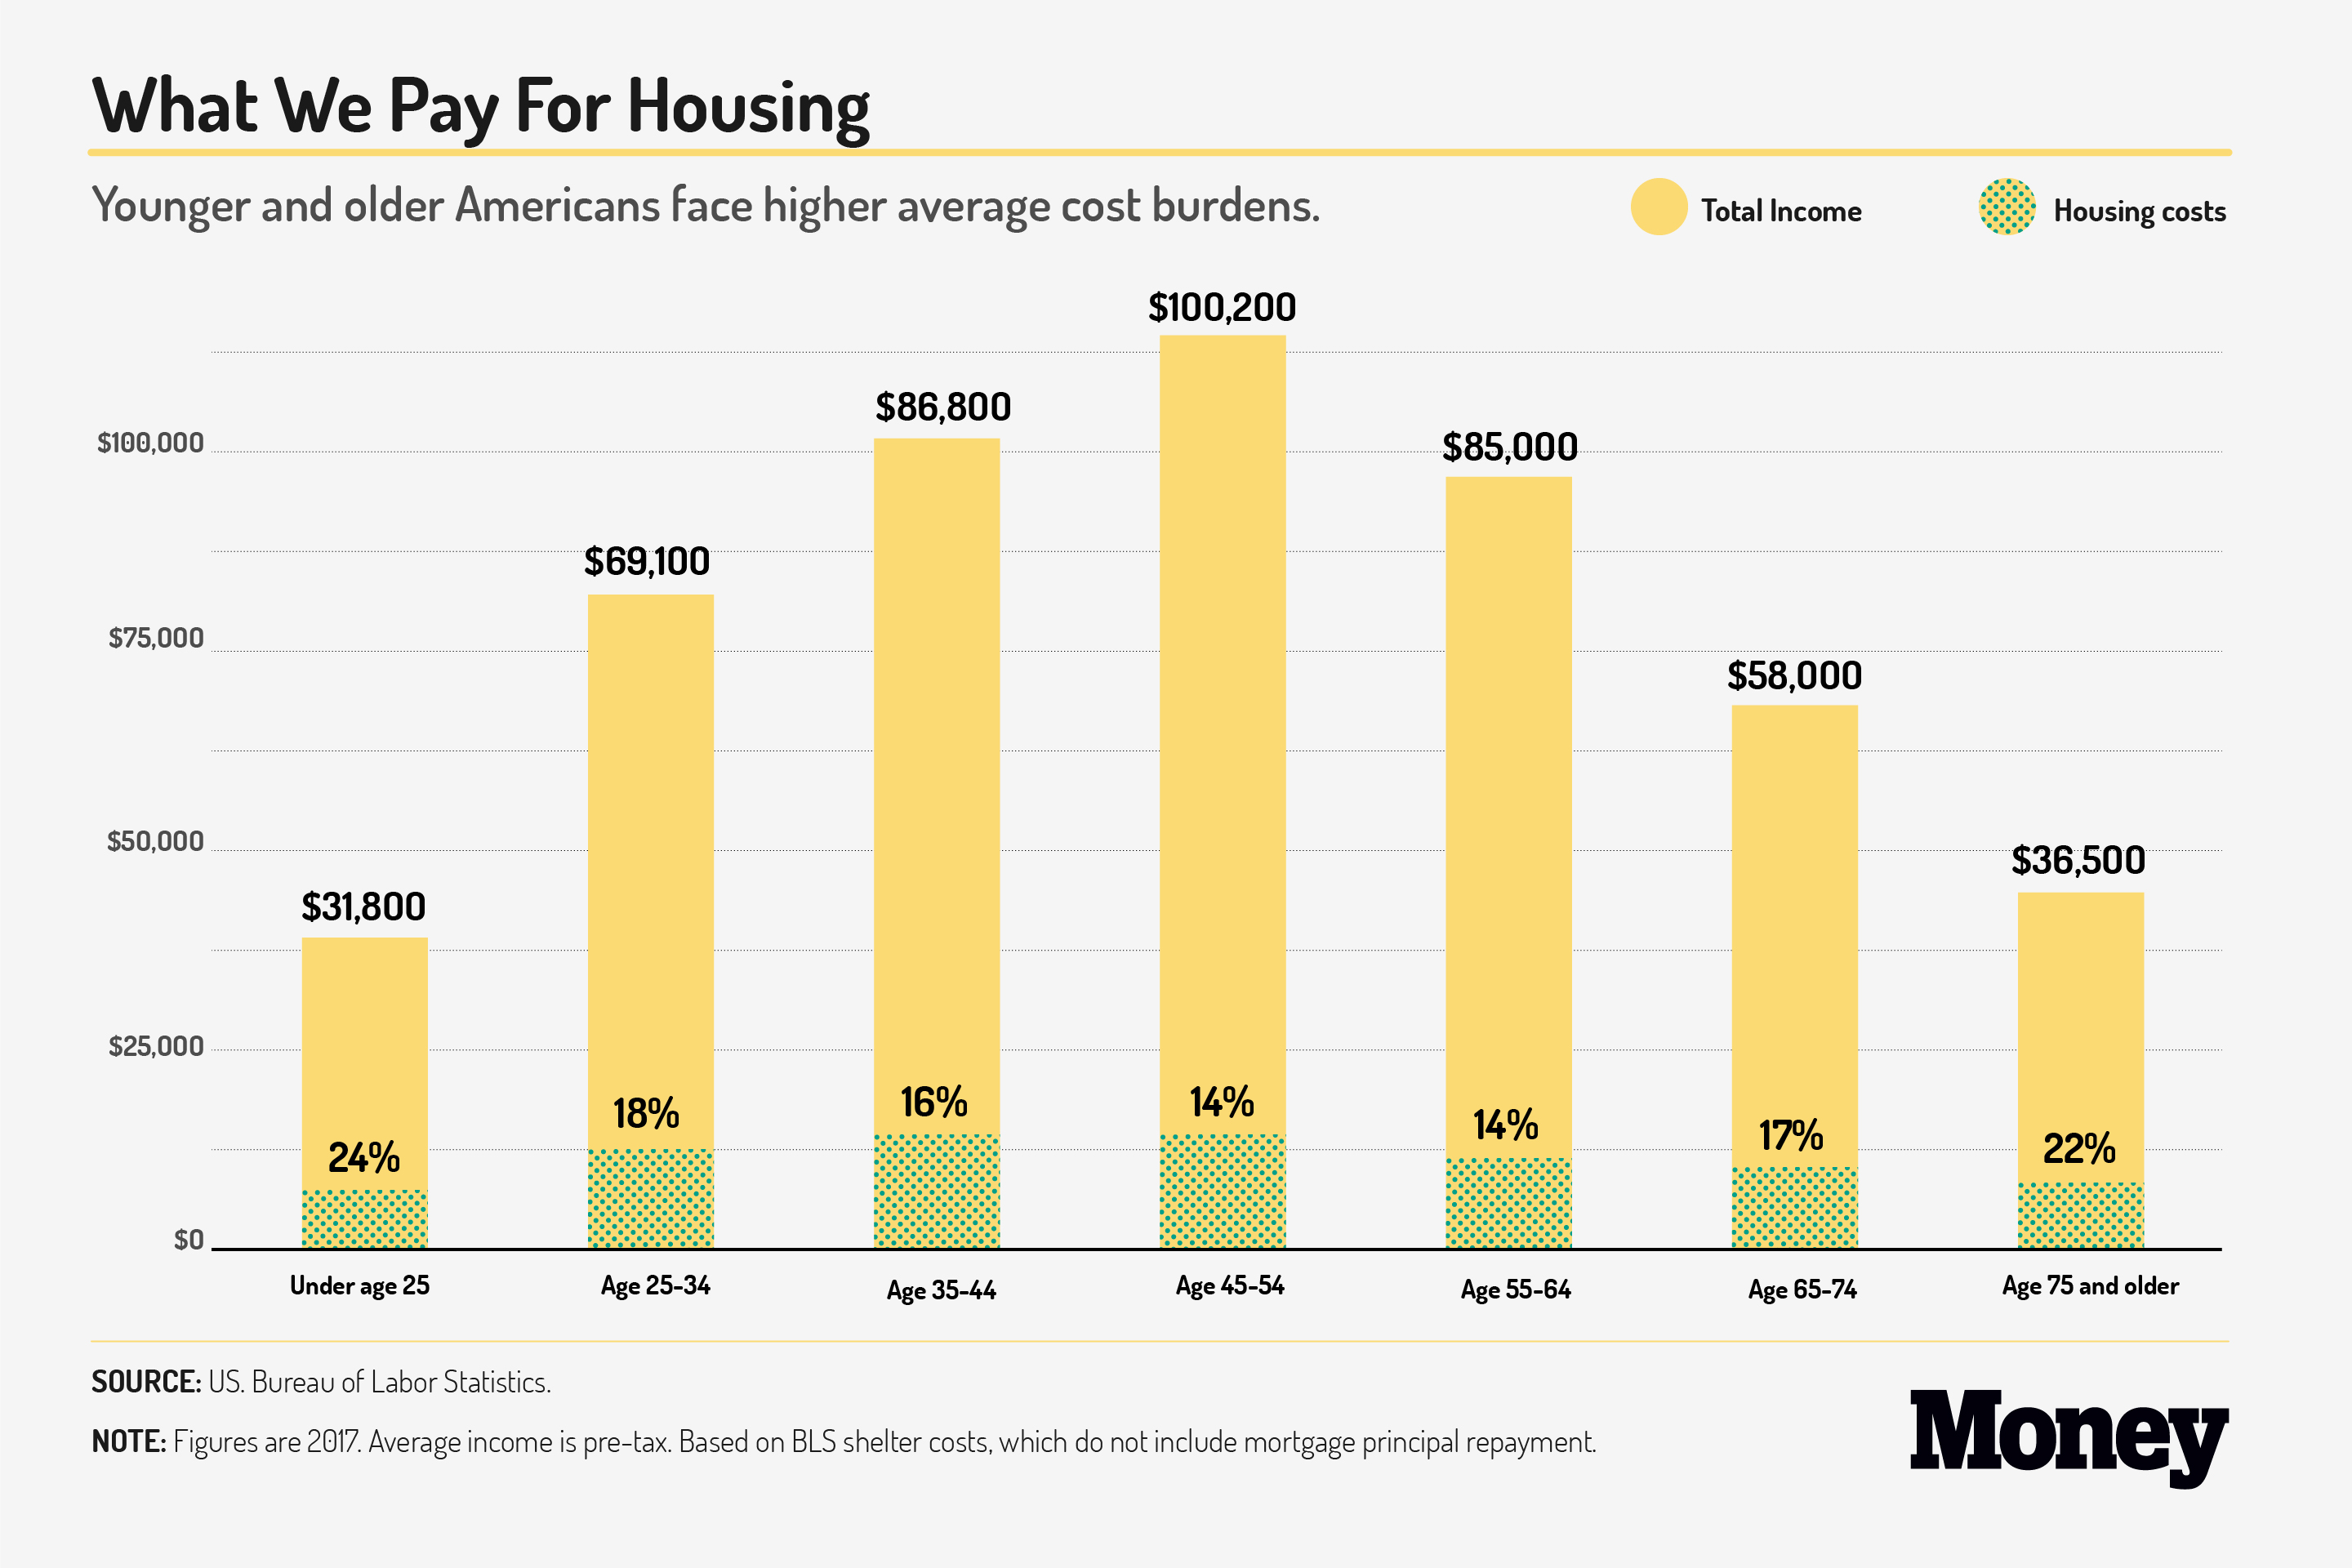 What We Pay For Housing